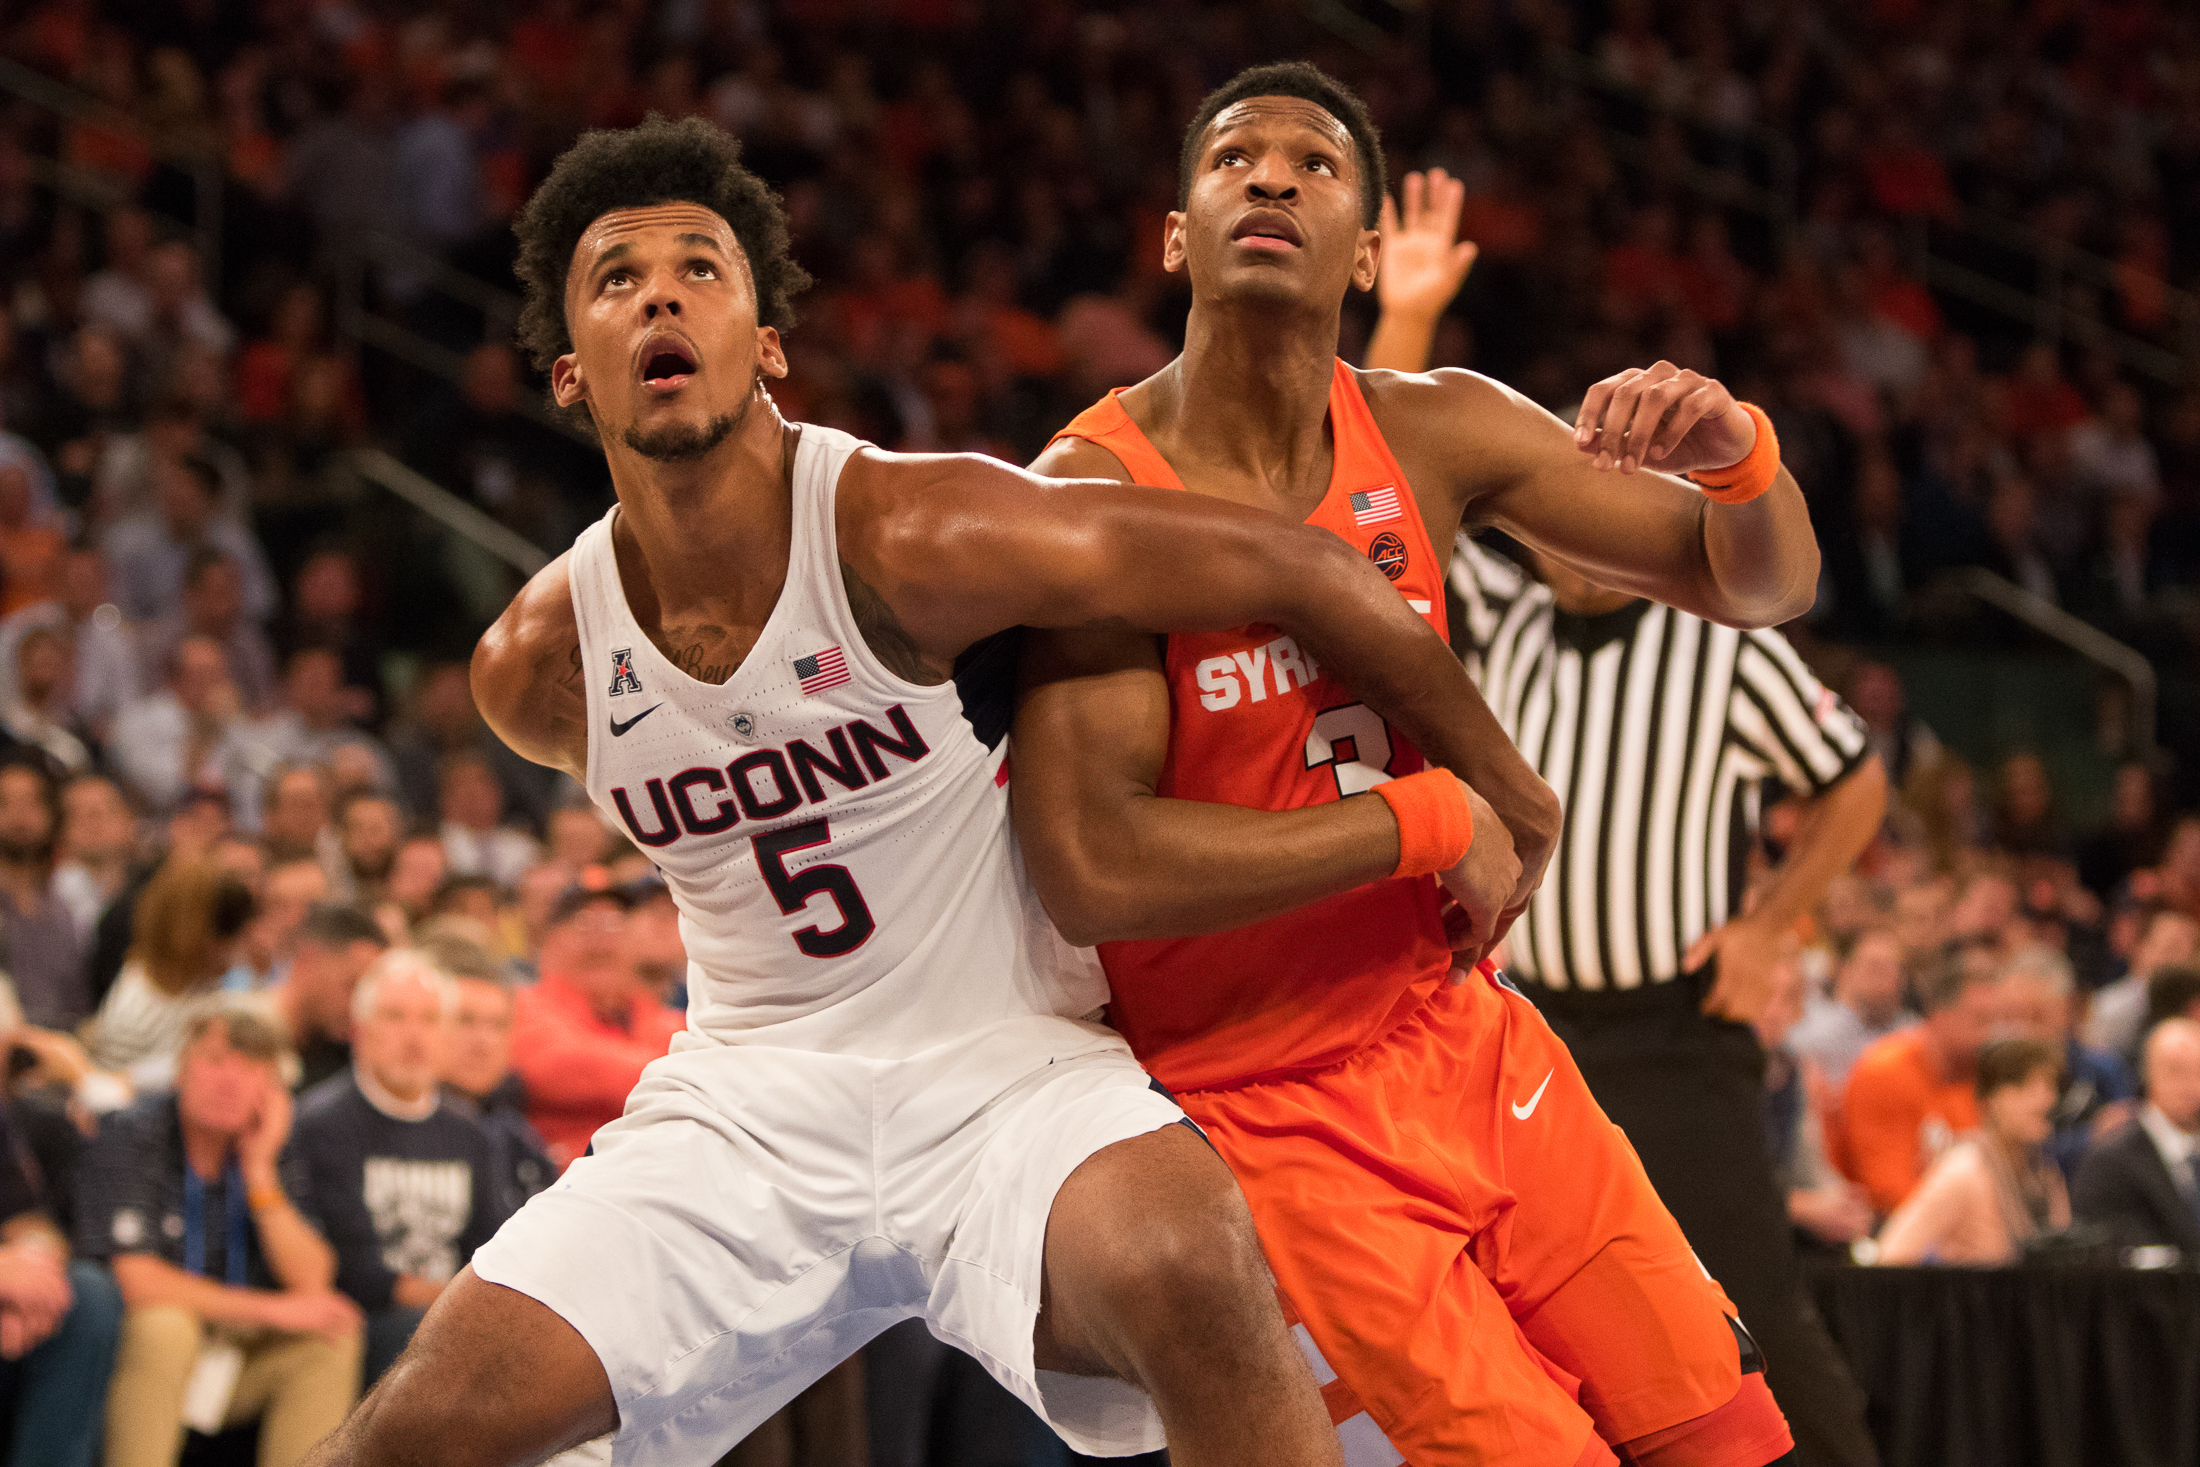 Column Uconn Syracuse Rivalry Is Still One Of College S